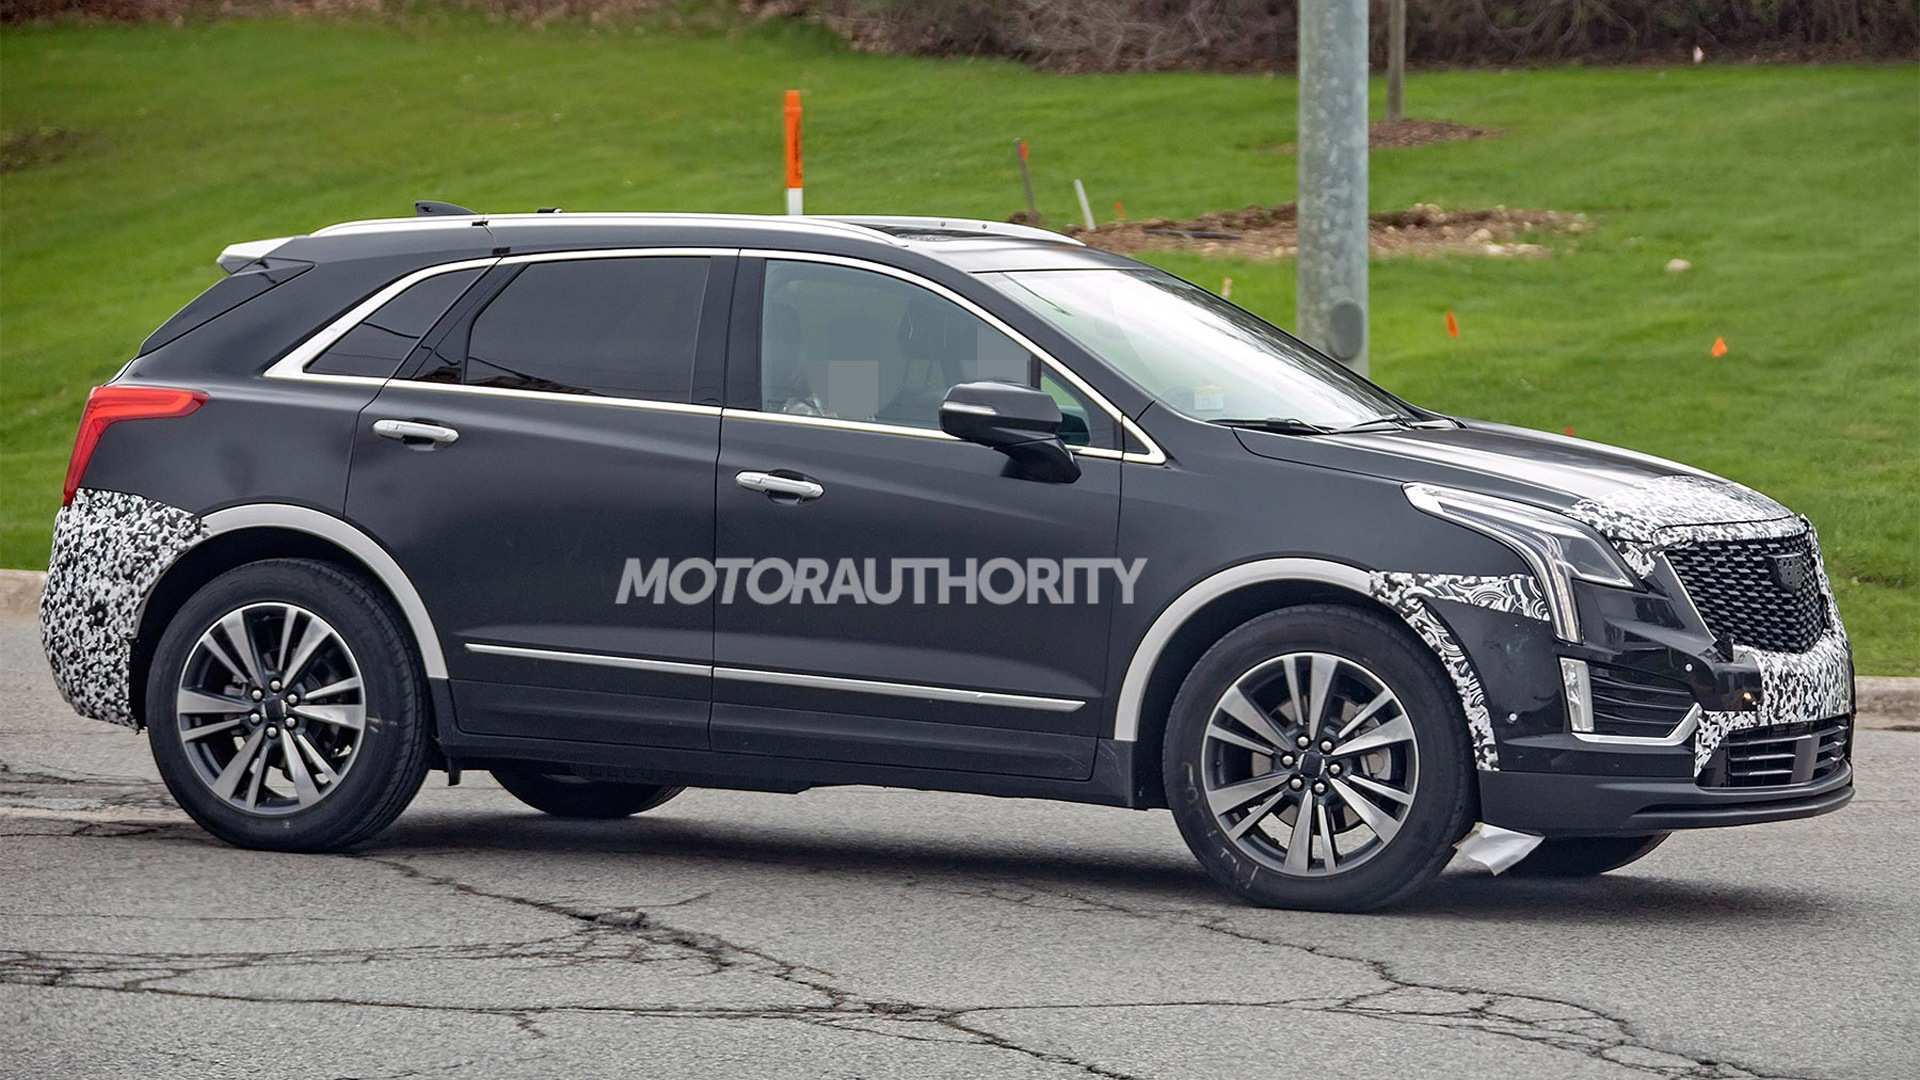 74 New 2020 Cadillac XT5 Price And Review